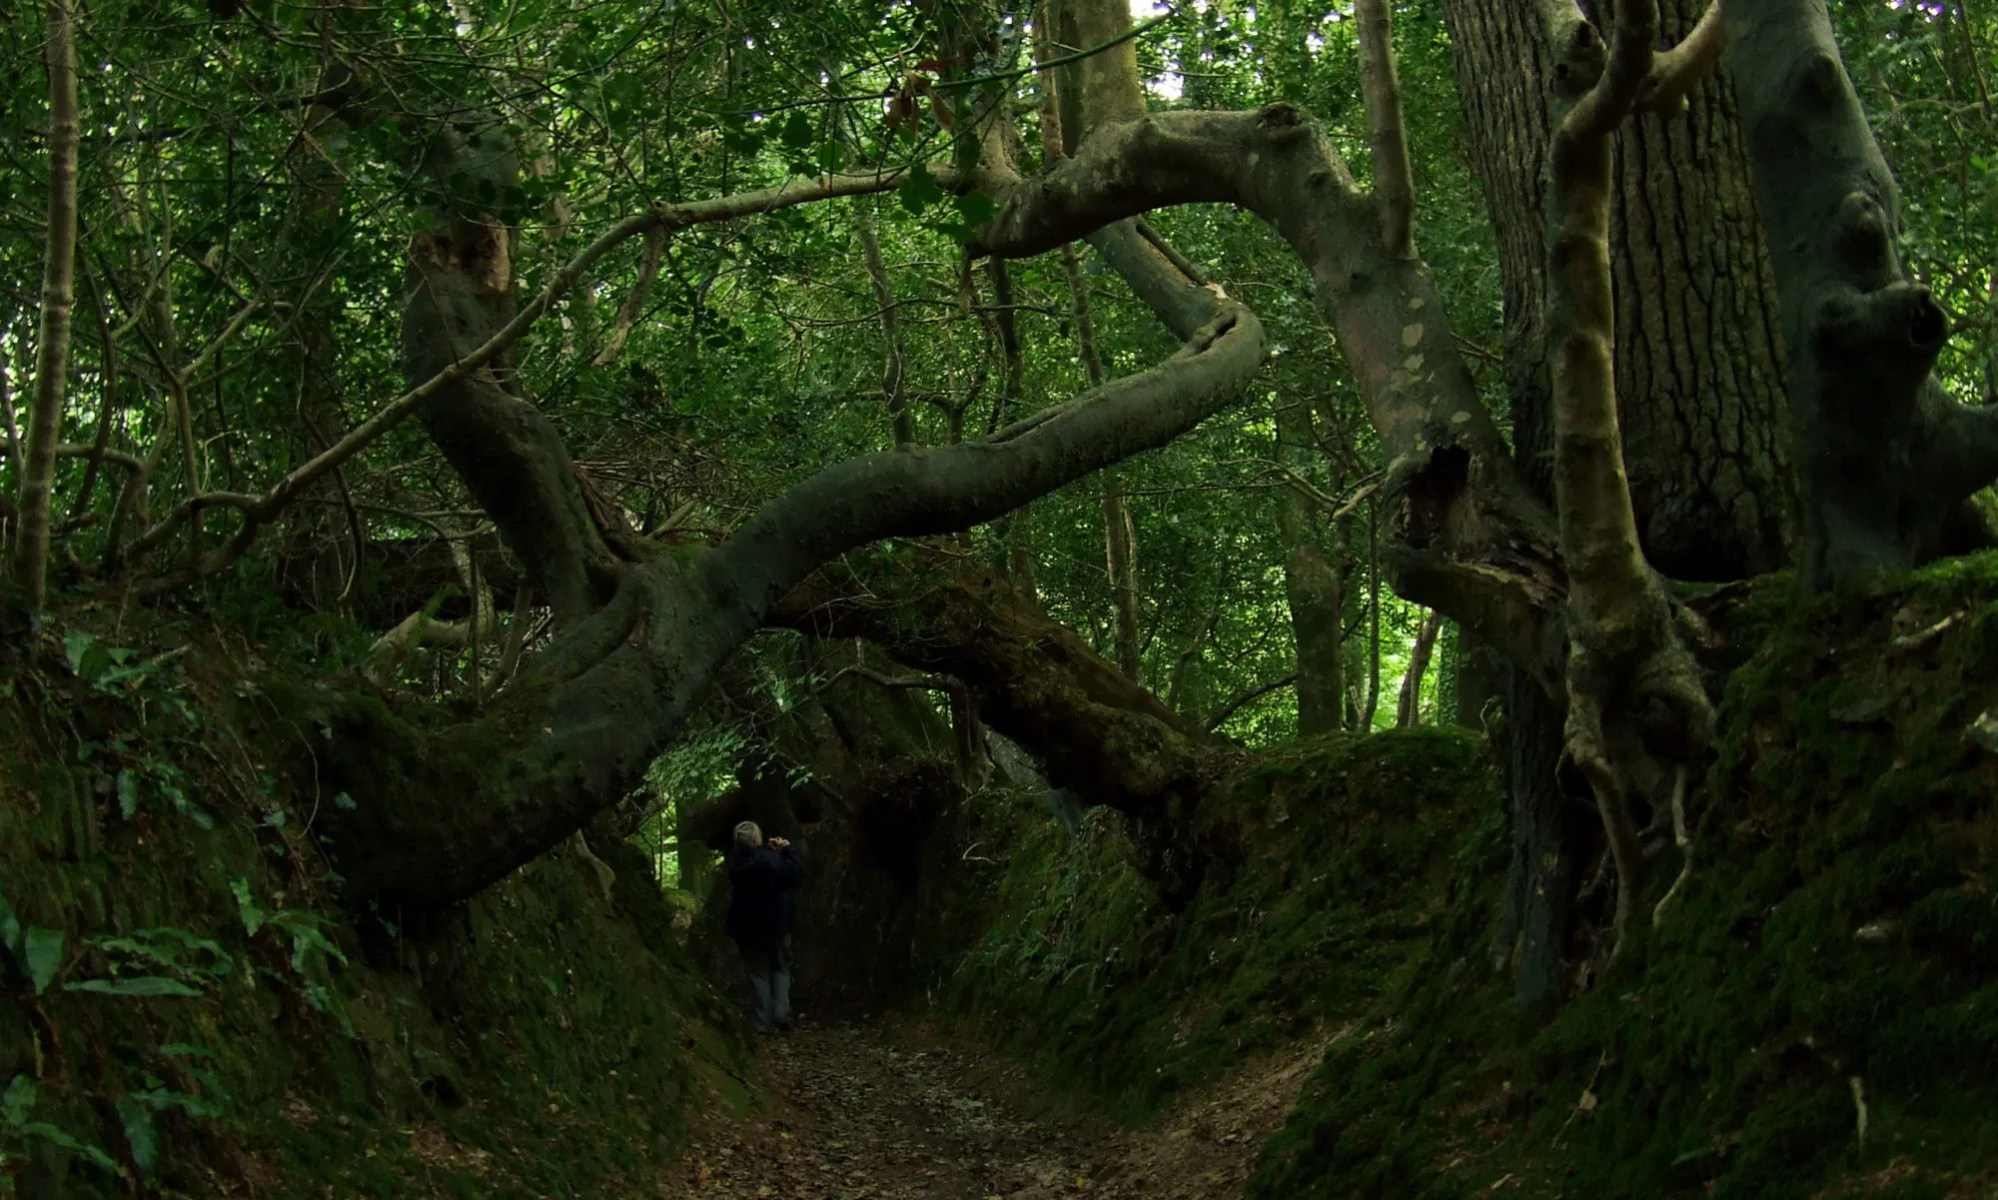 holloway overhung with ancient trees n Cornwall